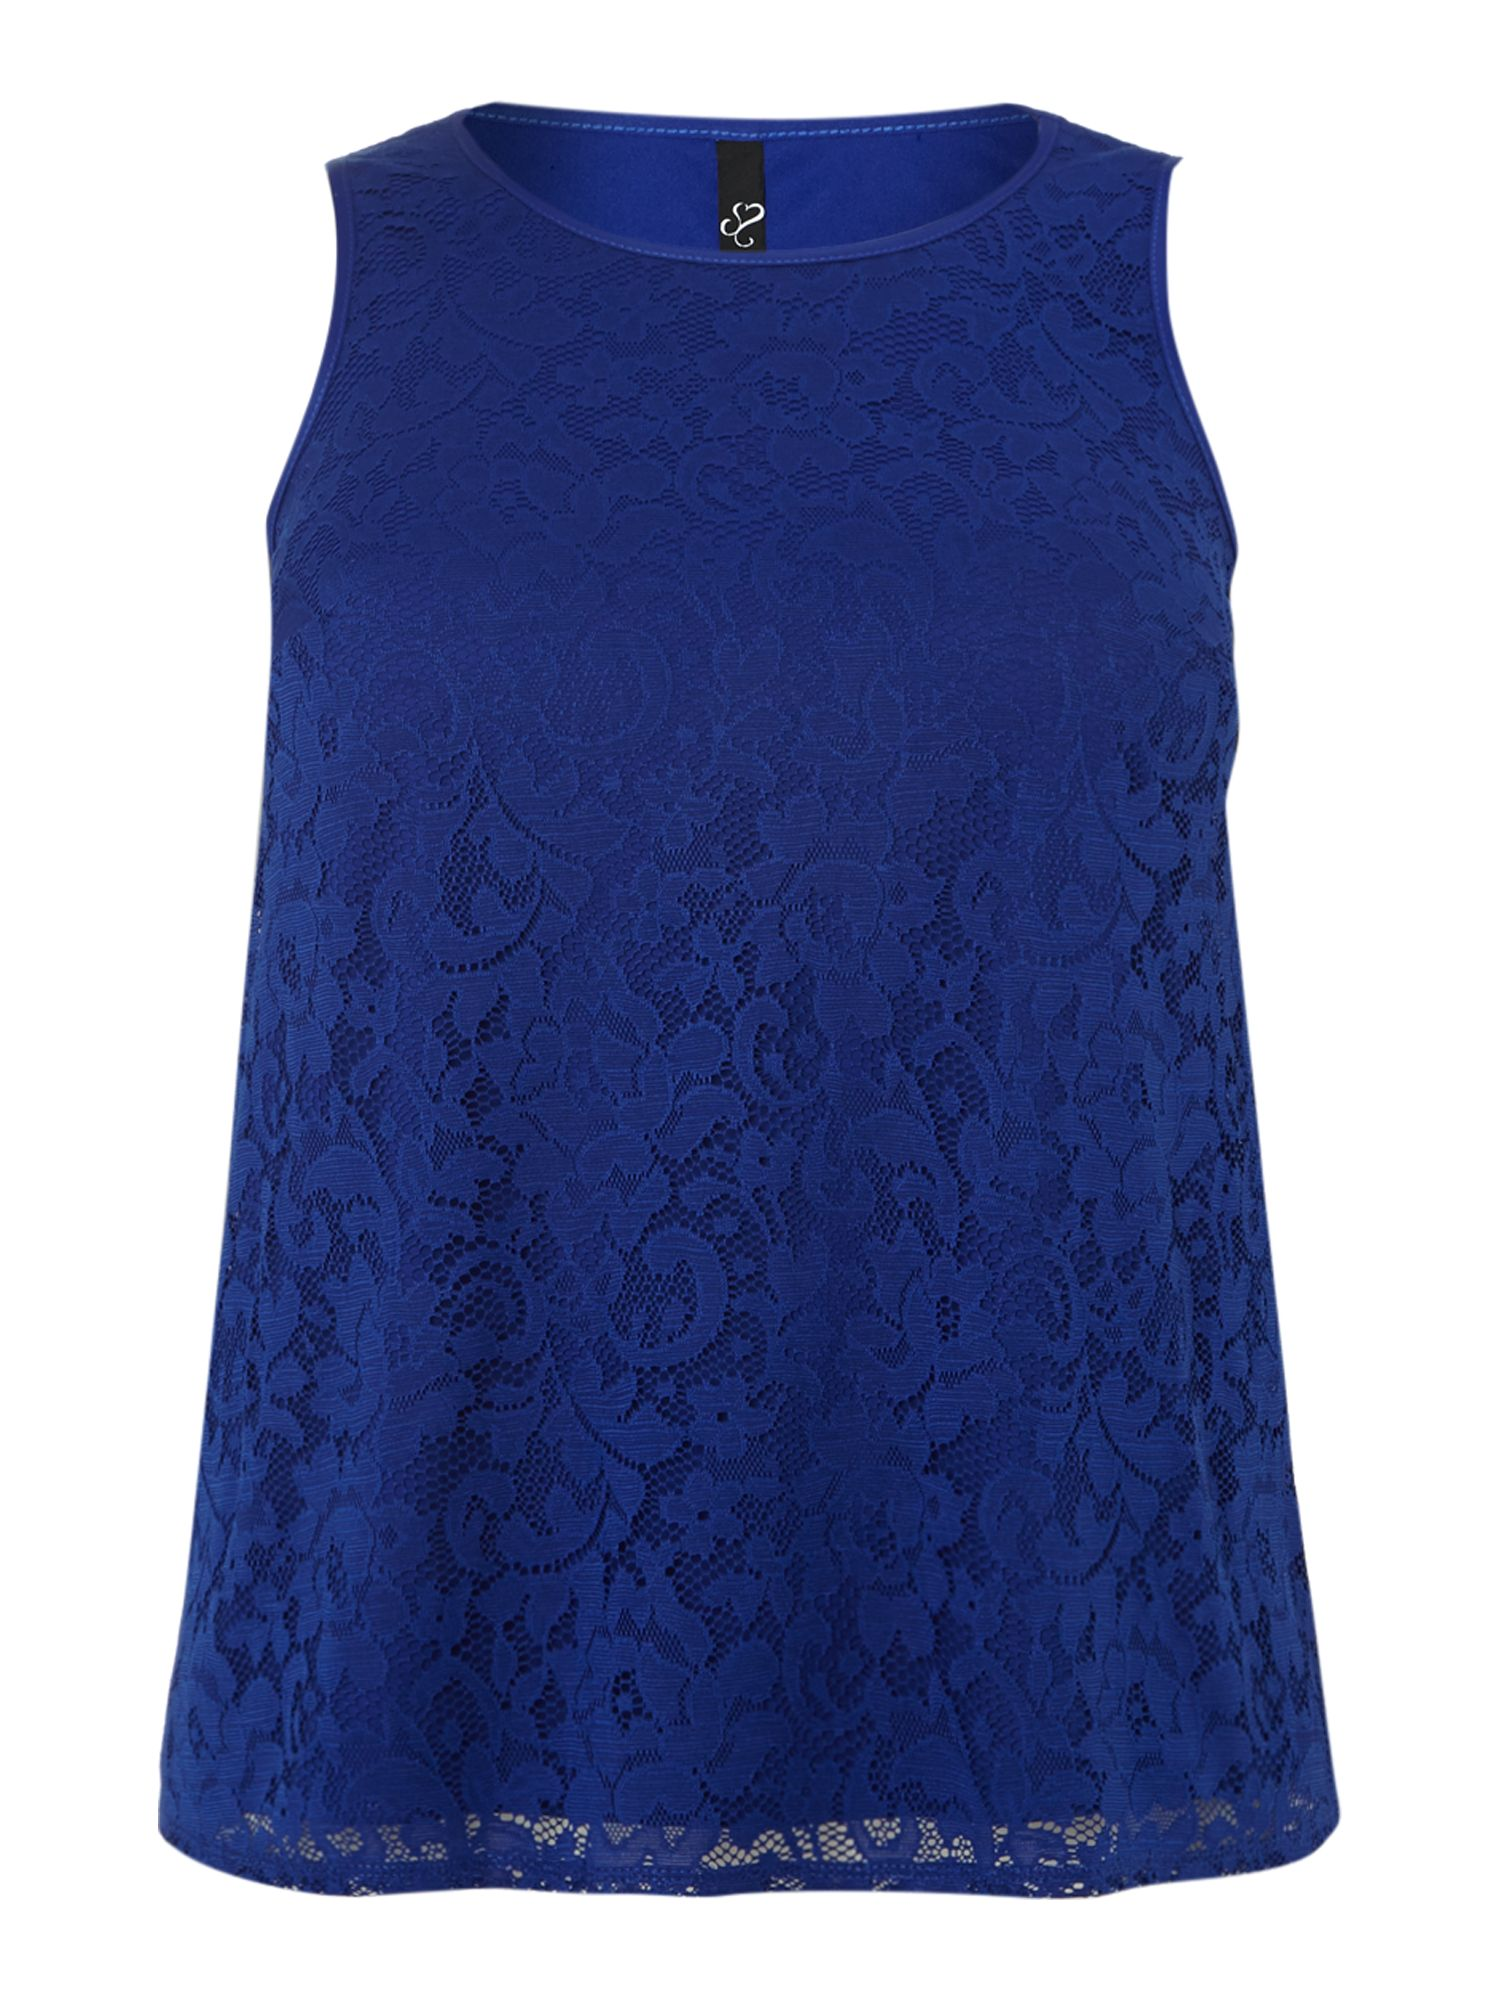 Cobalt Lace Shell Top